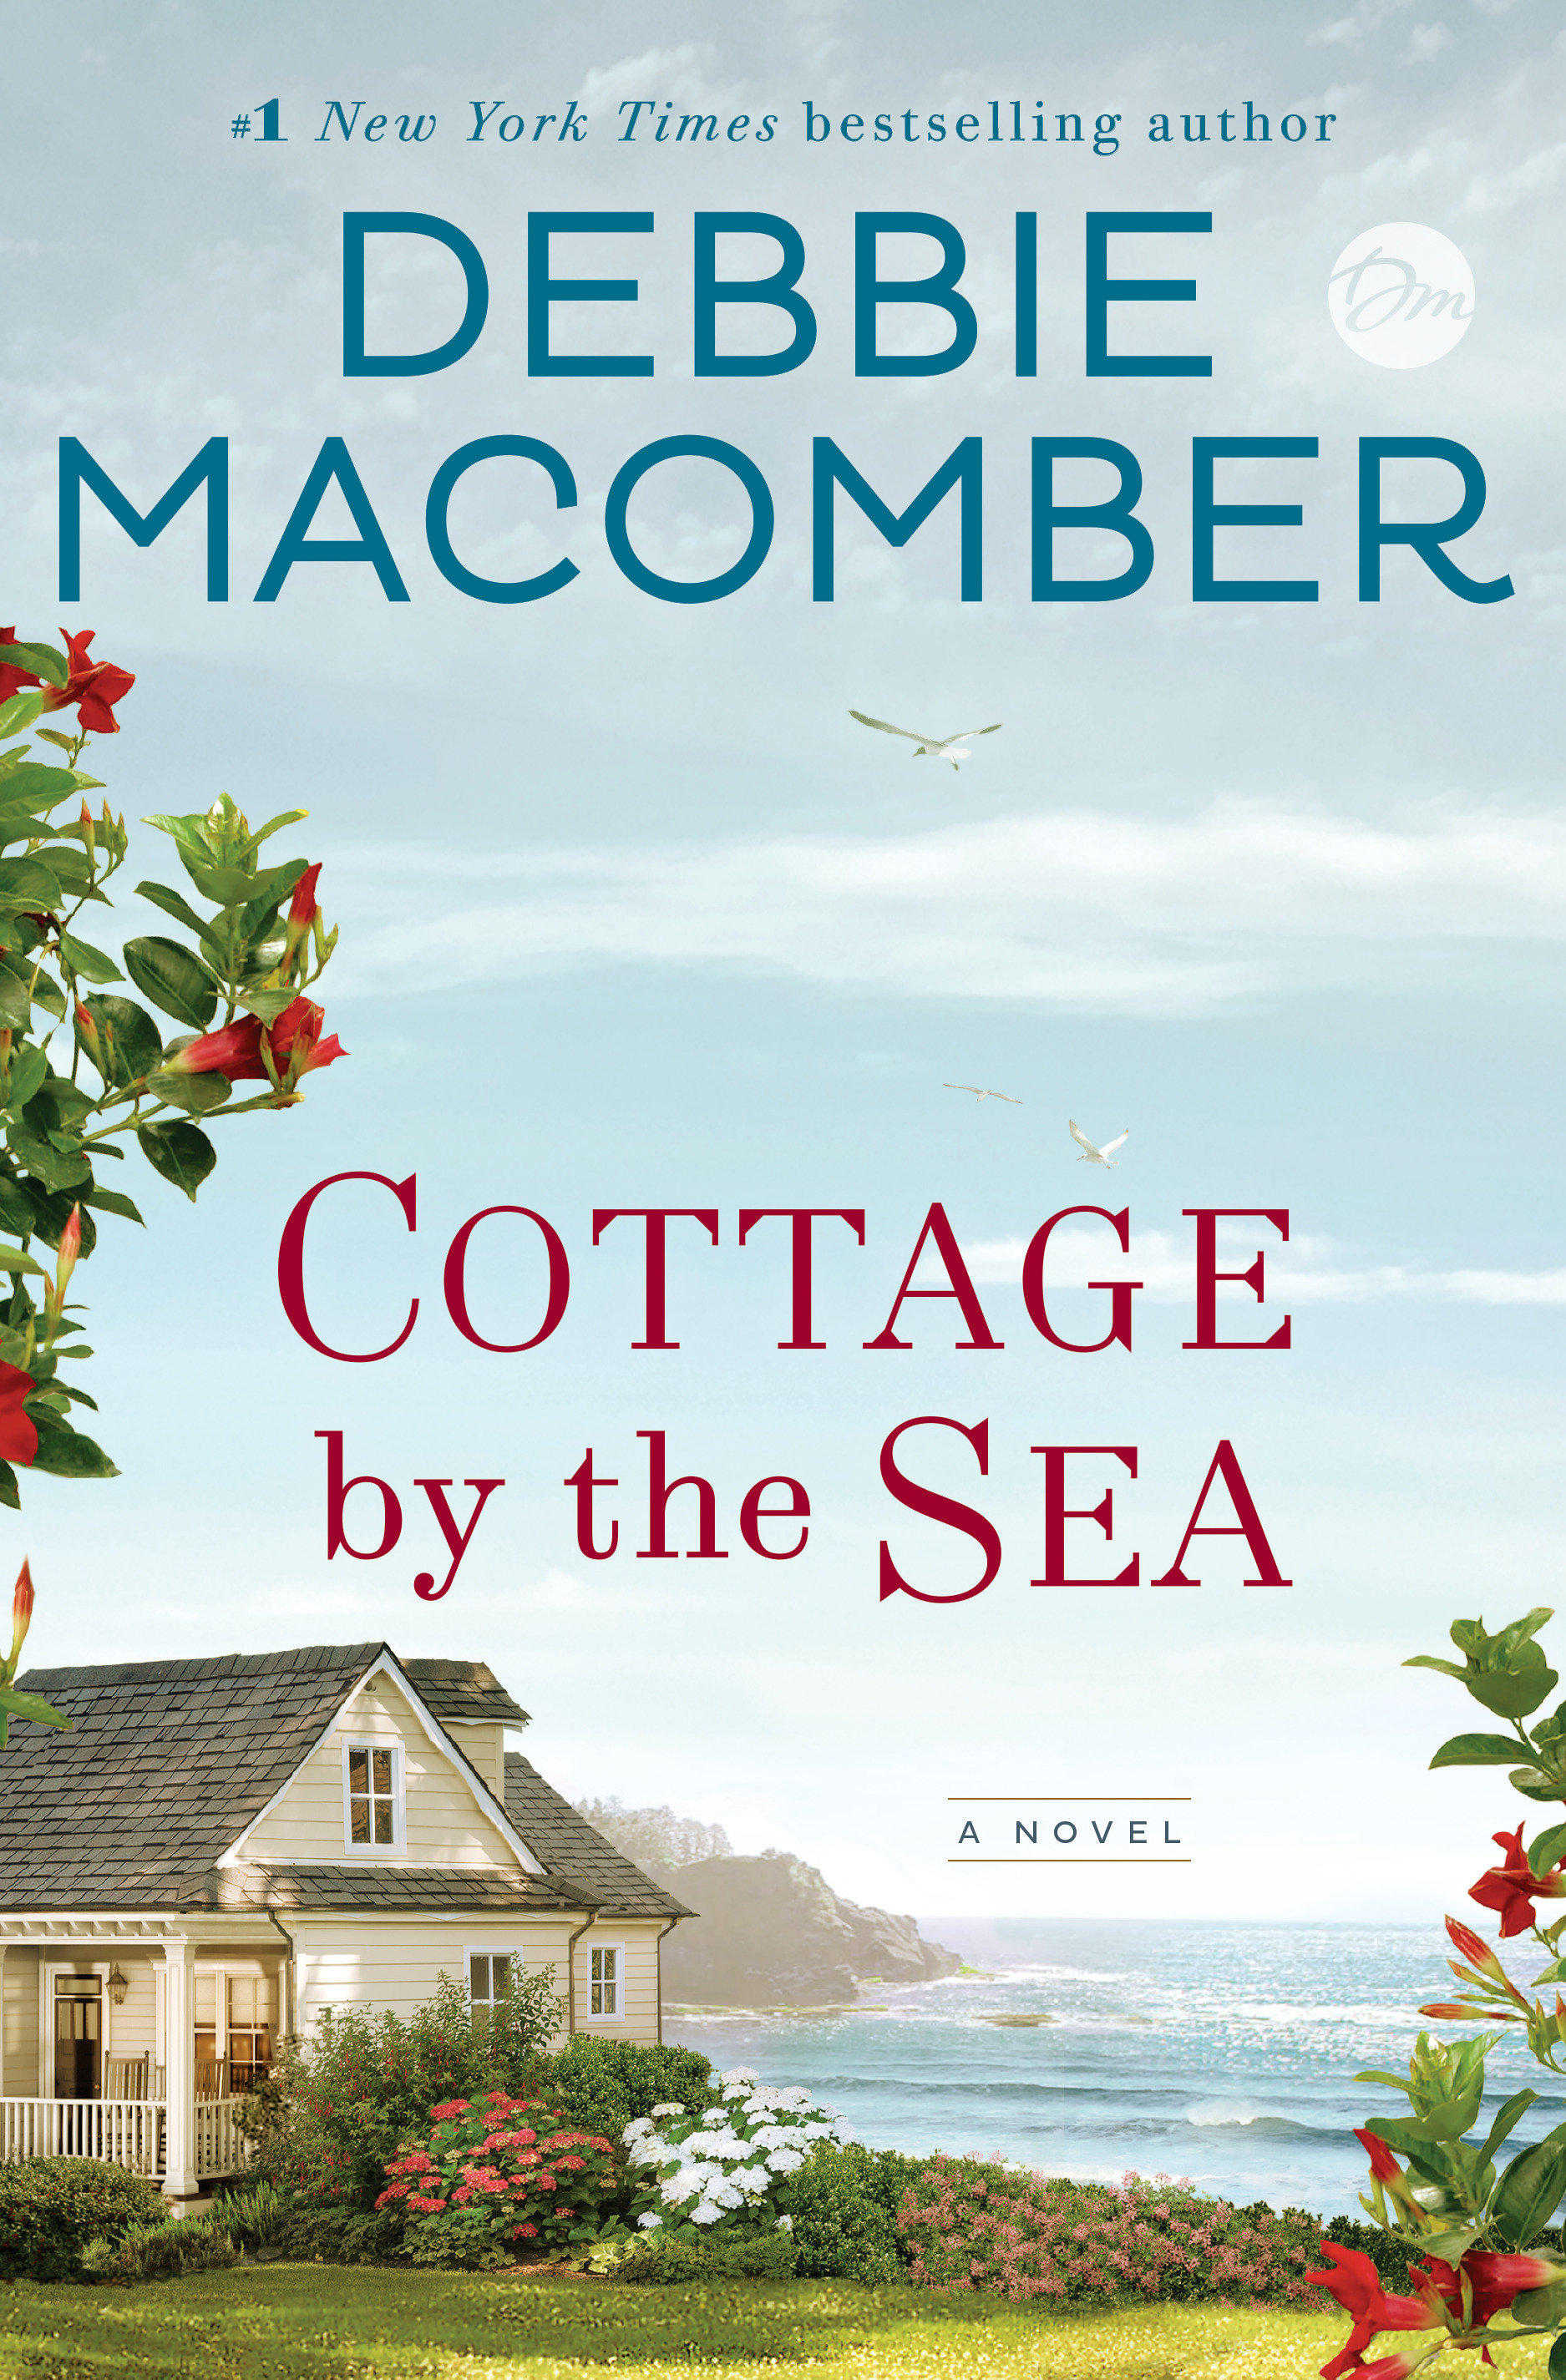 Cottage by the sea [eBook] : a novel